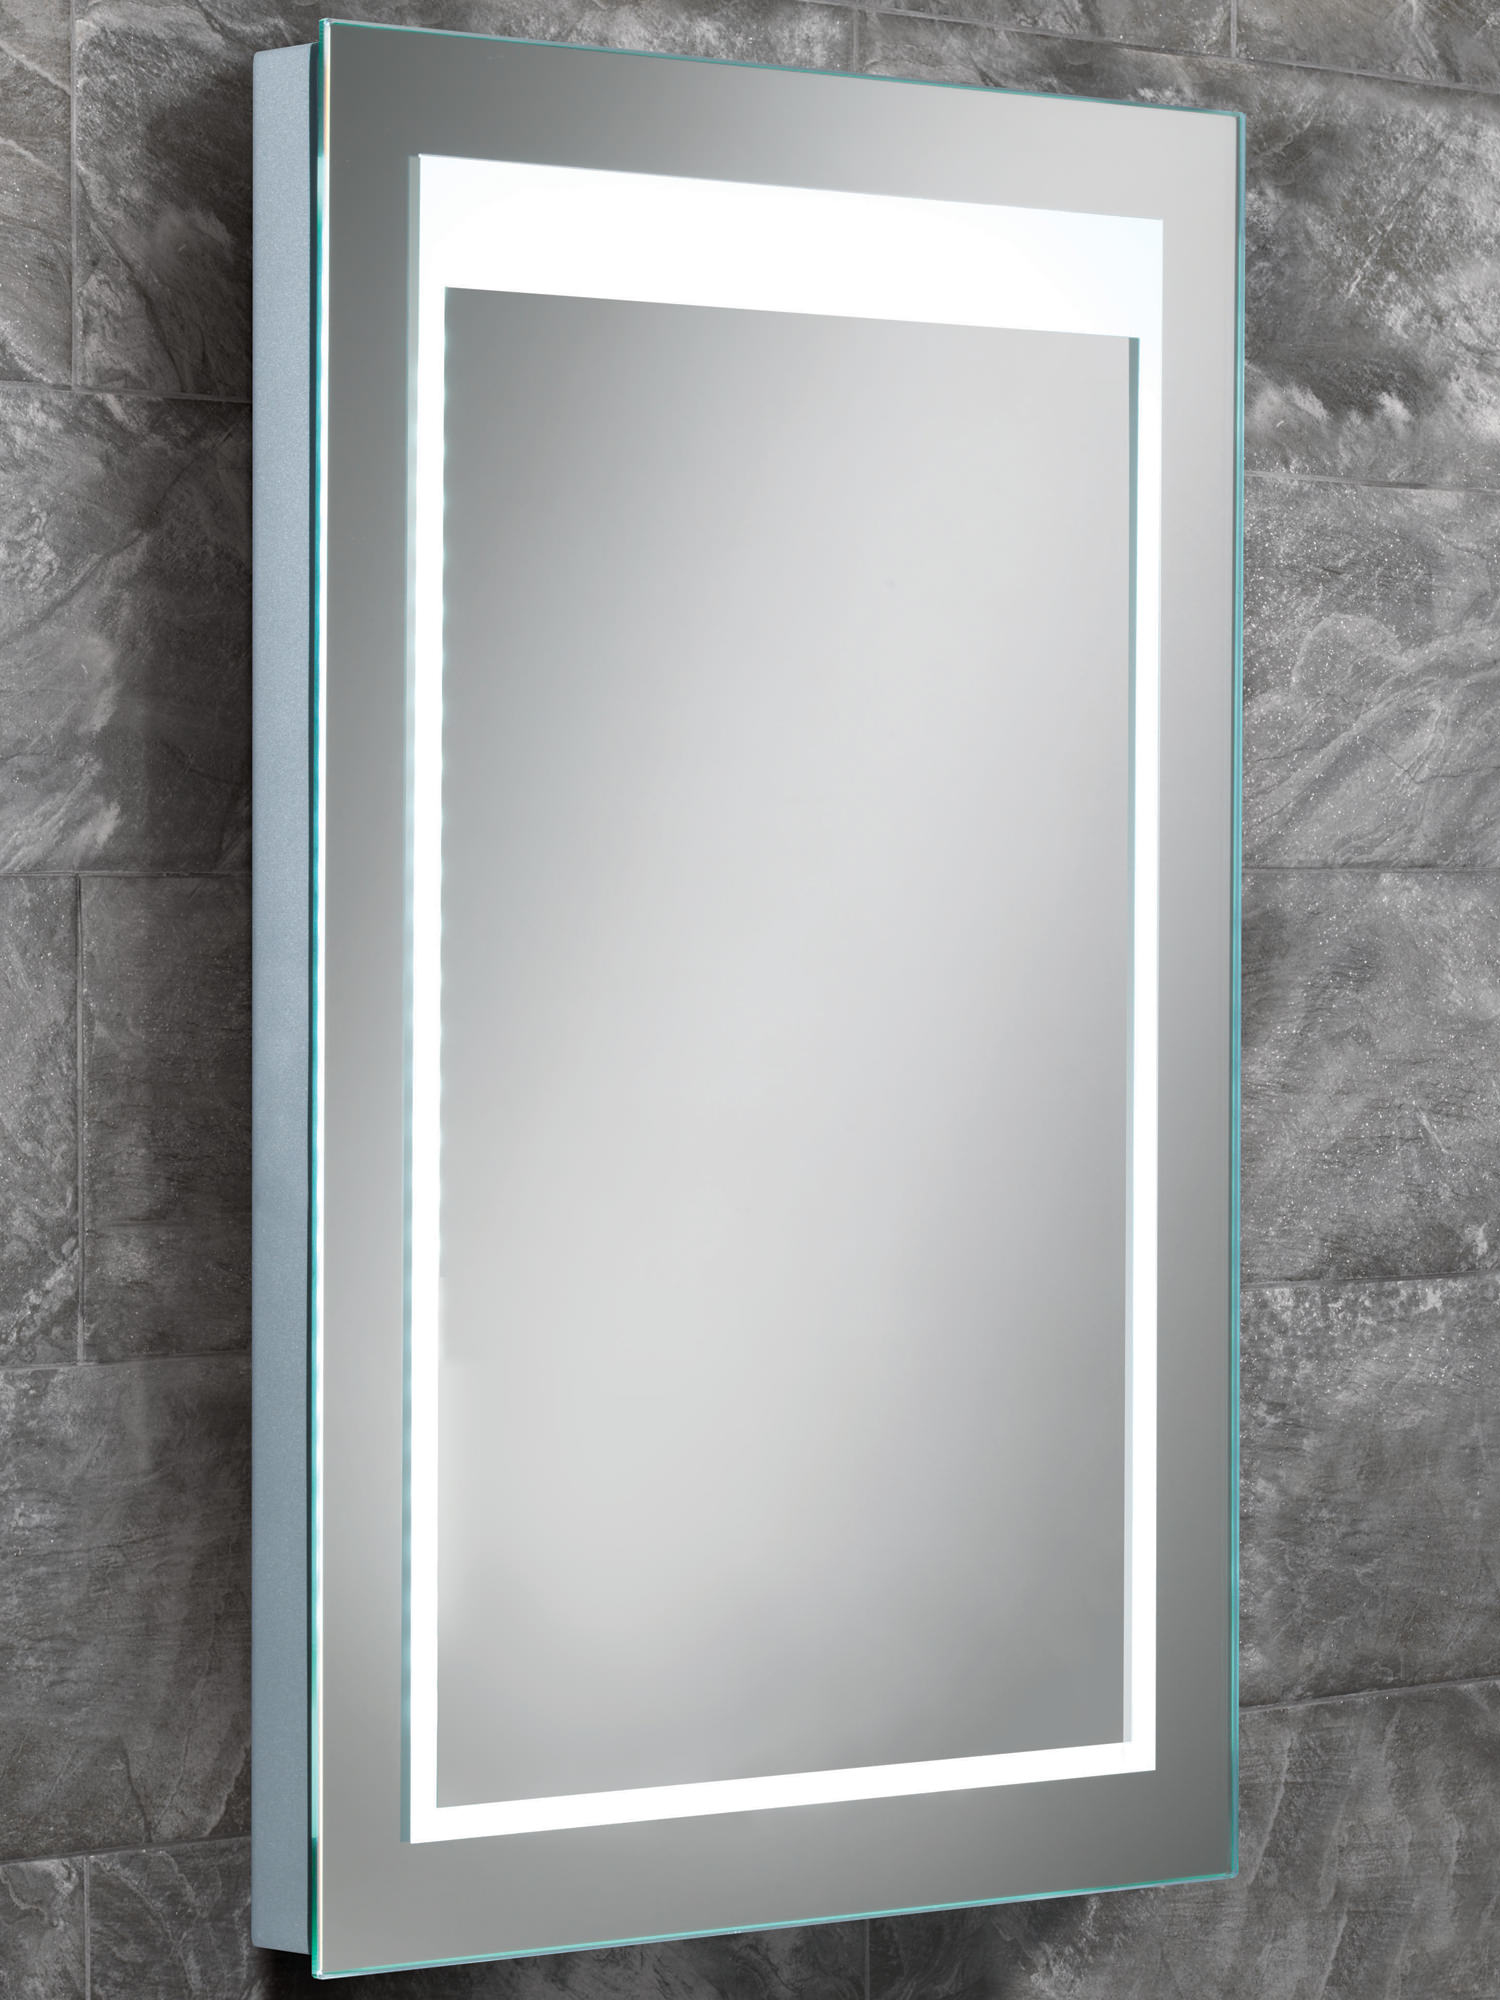 hib liberty steam free led back lit bathroom mirror 400 x 20674